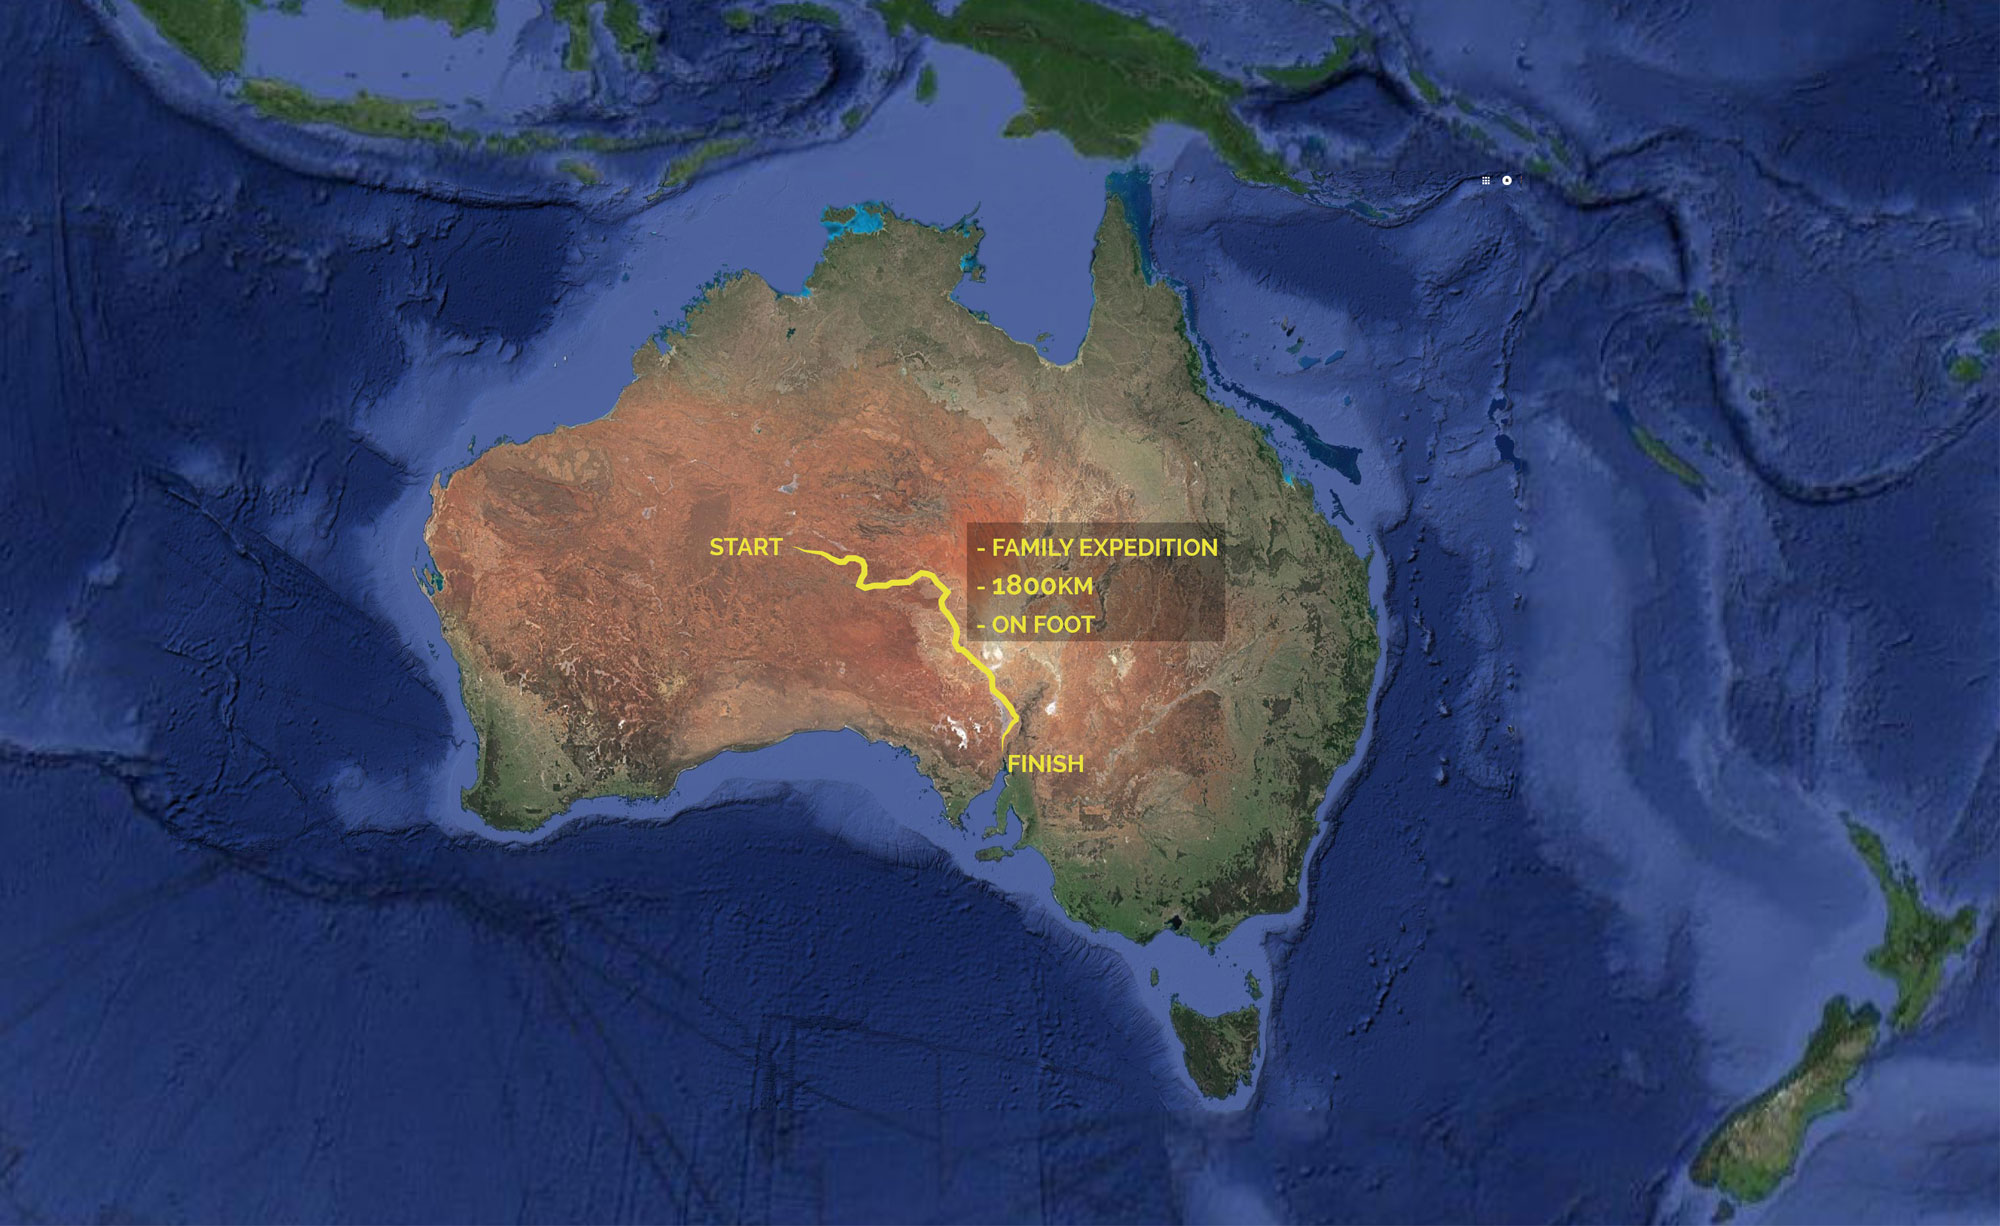 The Route – Heading Across the Outback